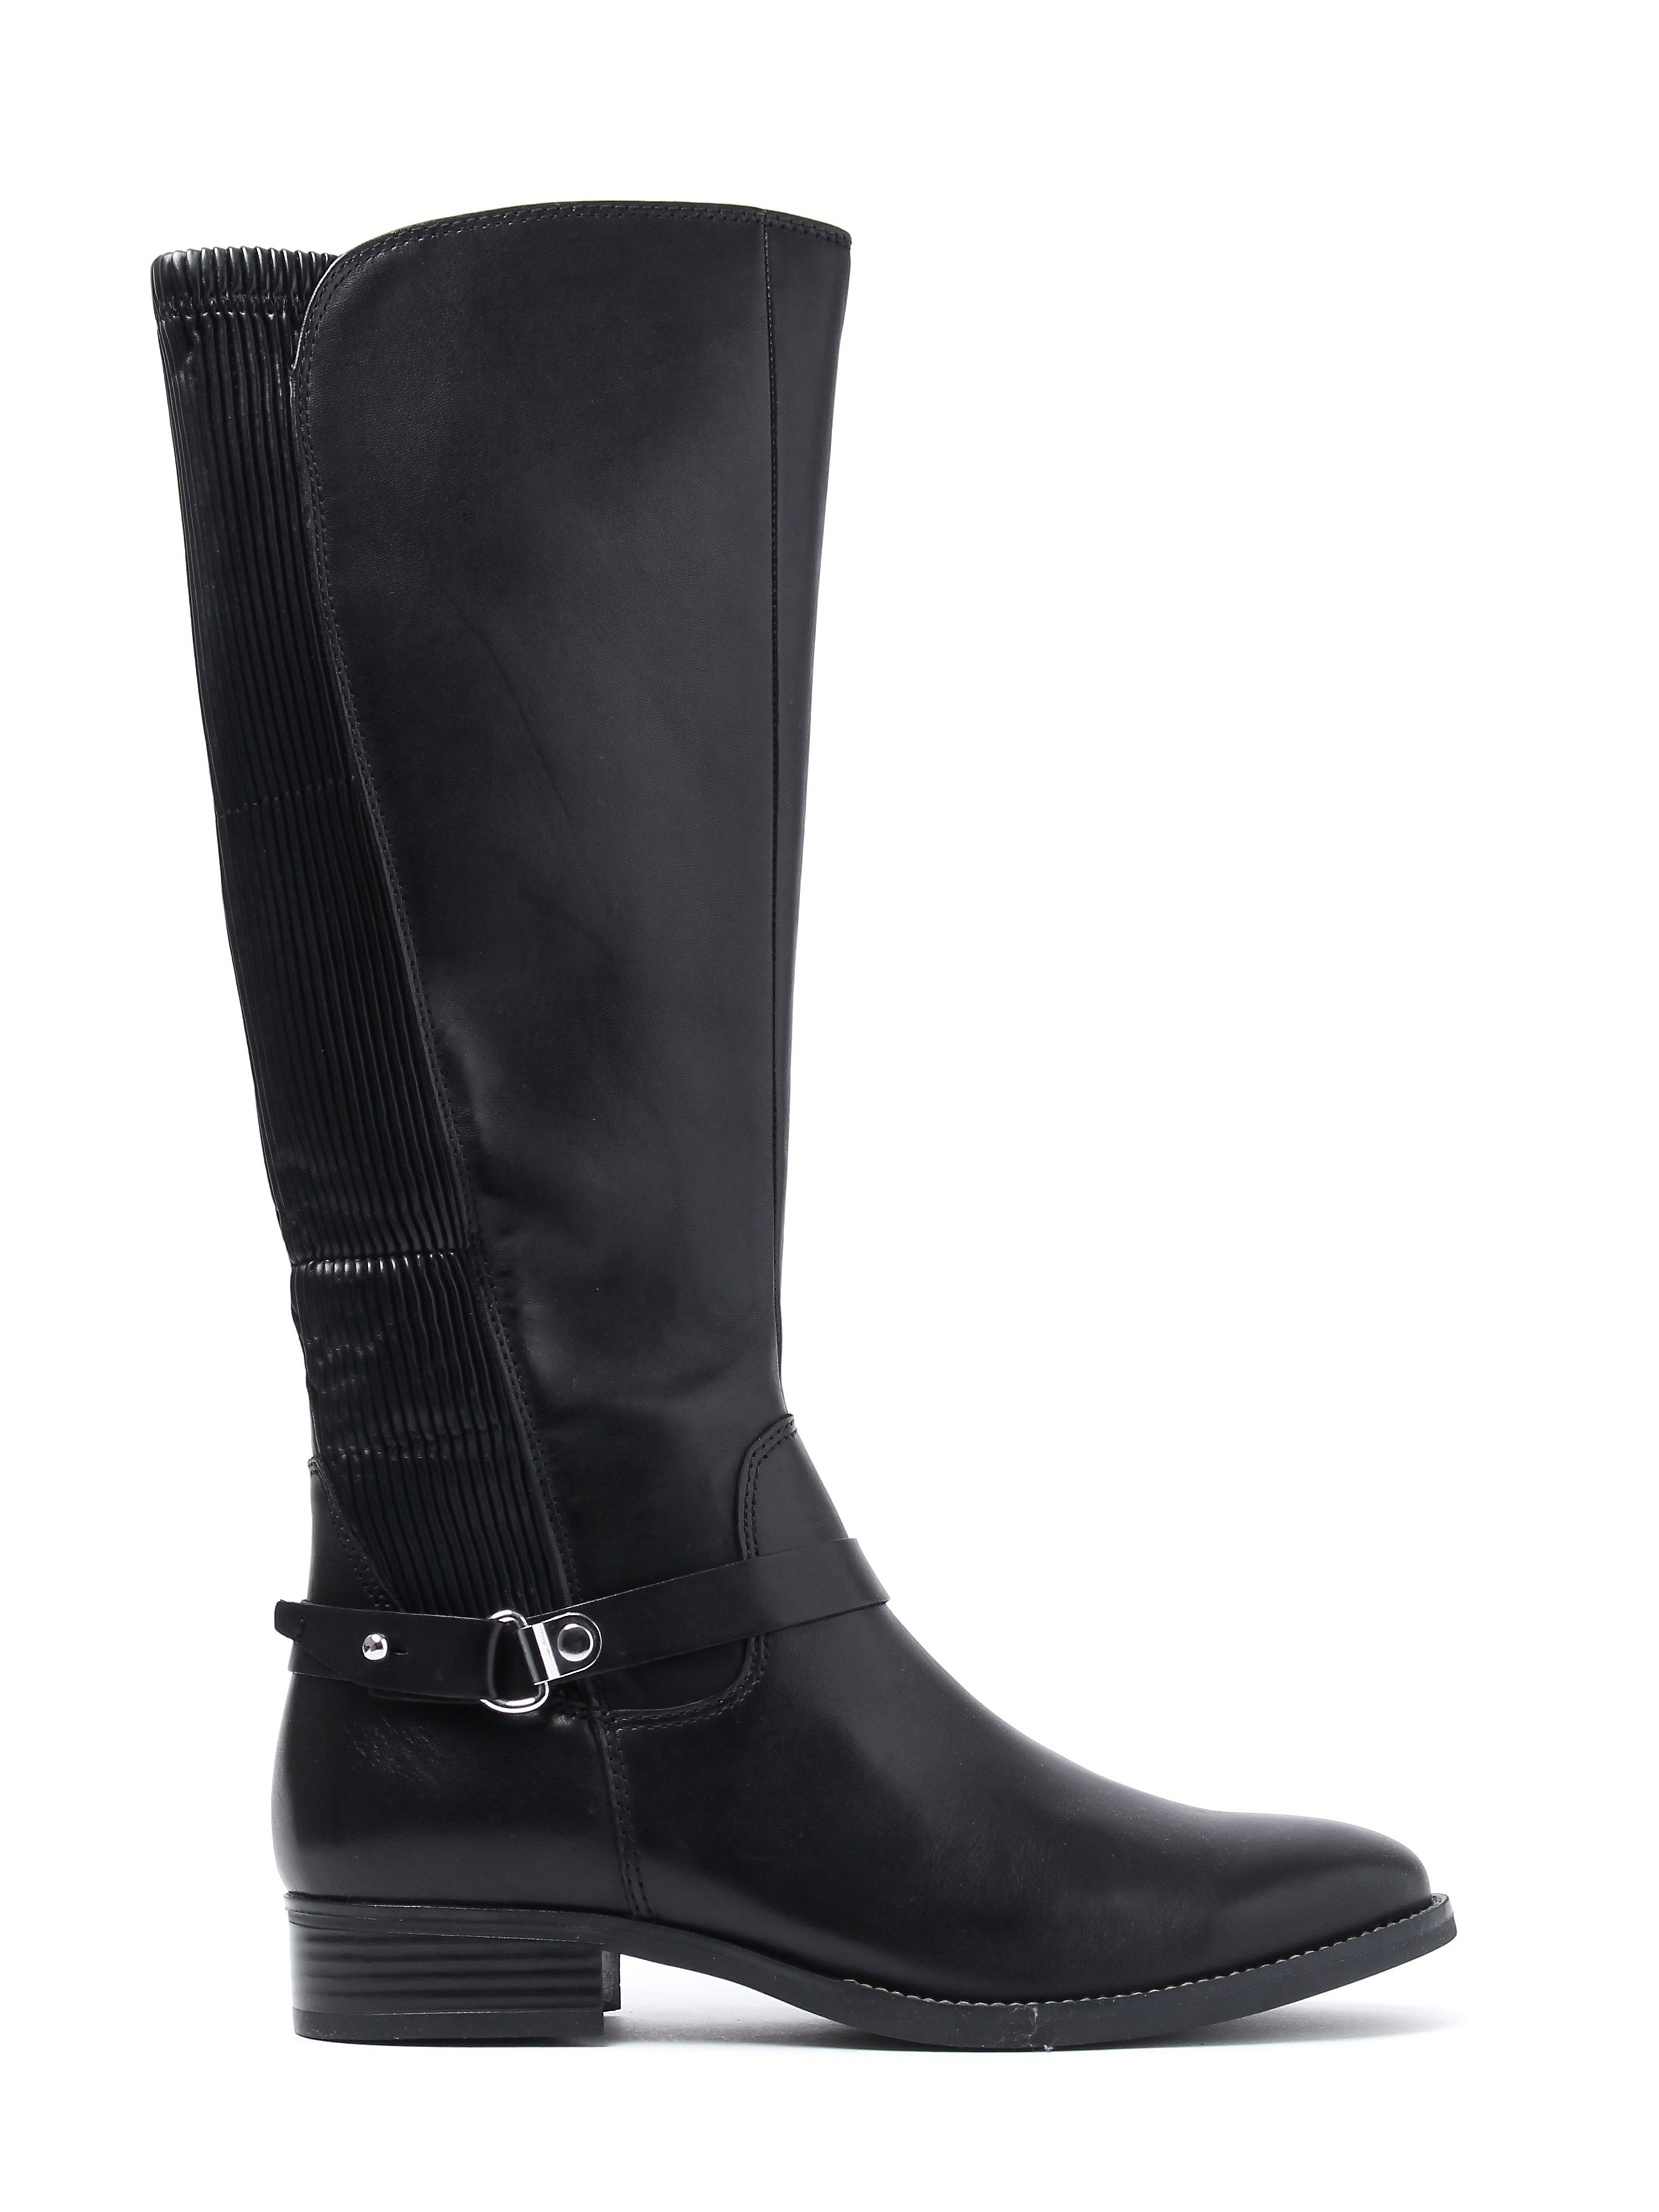 Caprice Women's Nappa Tall Boots - Black Leather